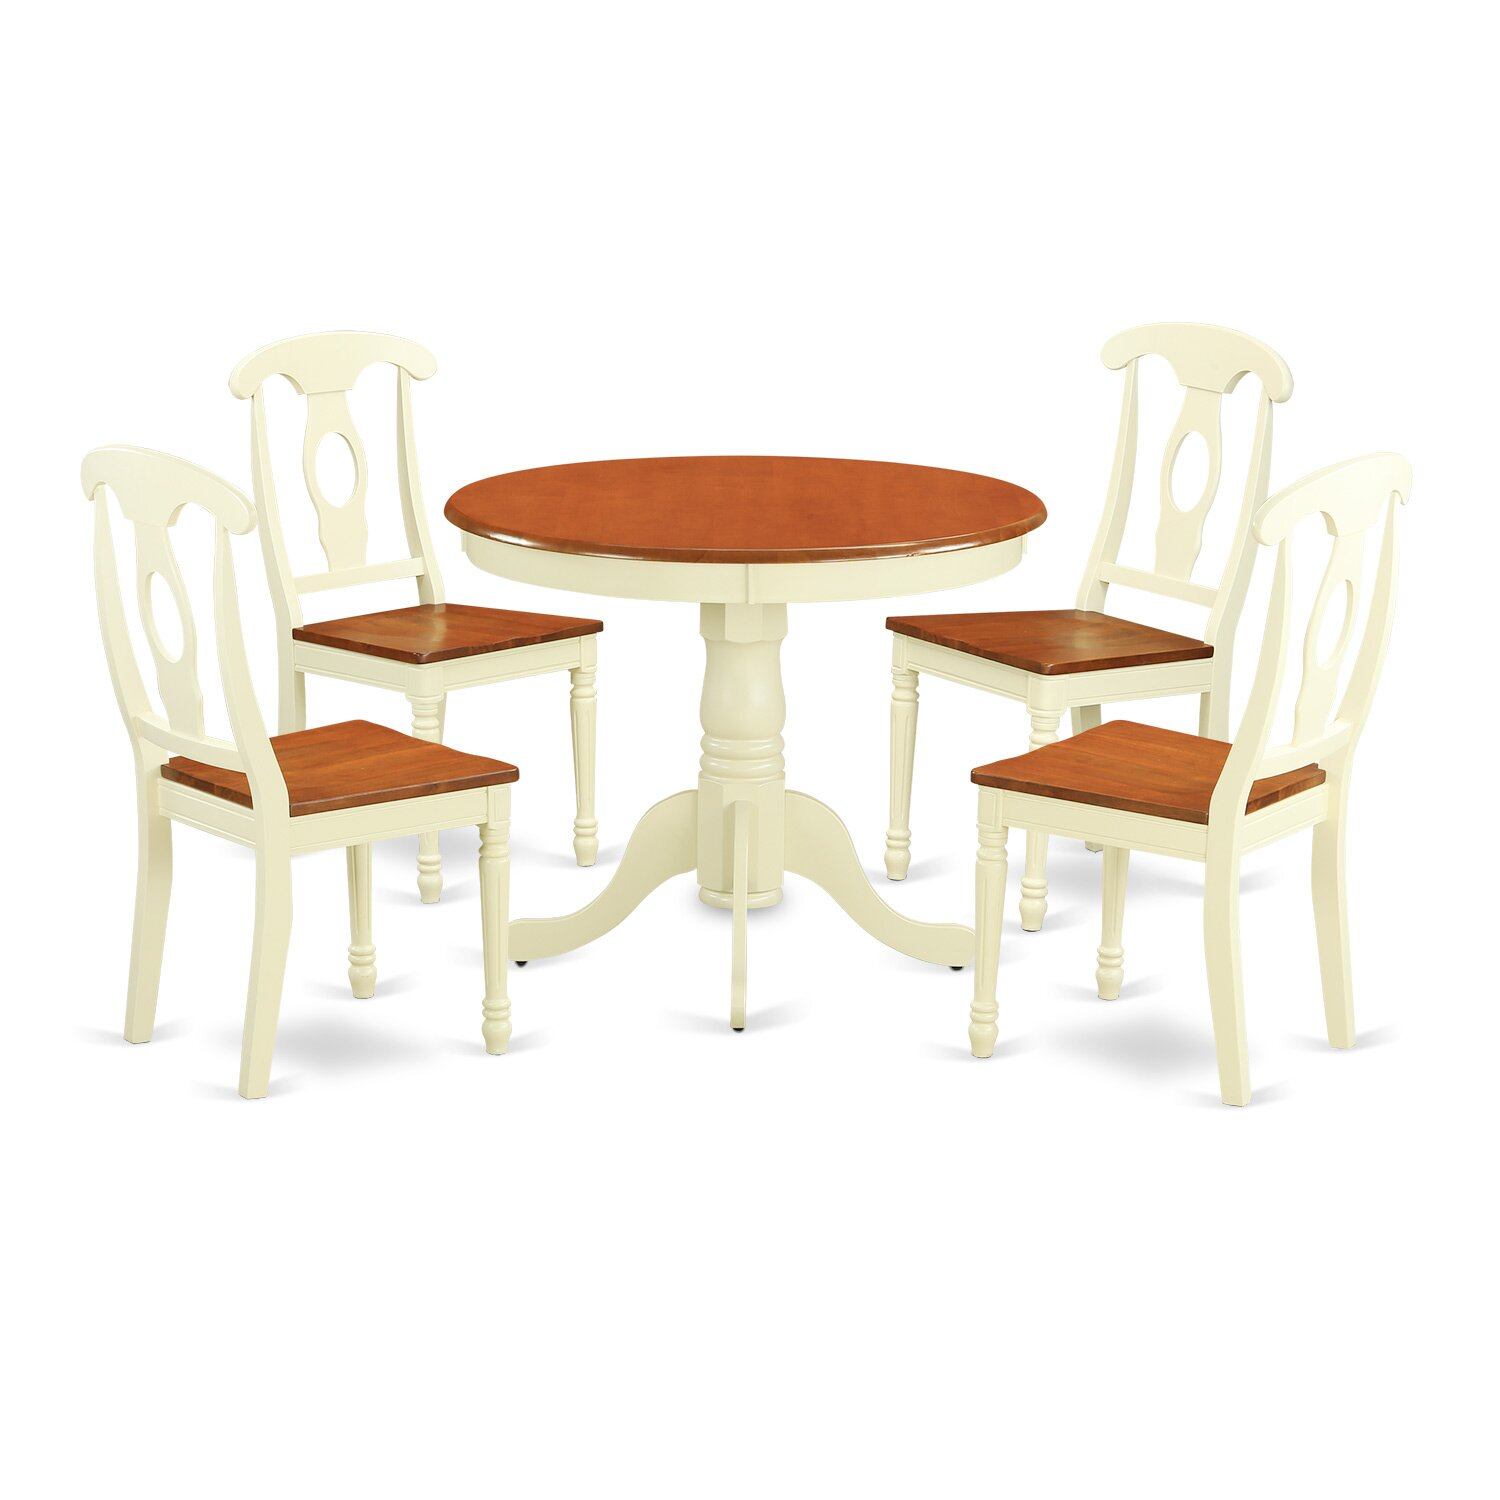 East west 5 piece dining set wayfair for 4 kitchen table chairs